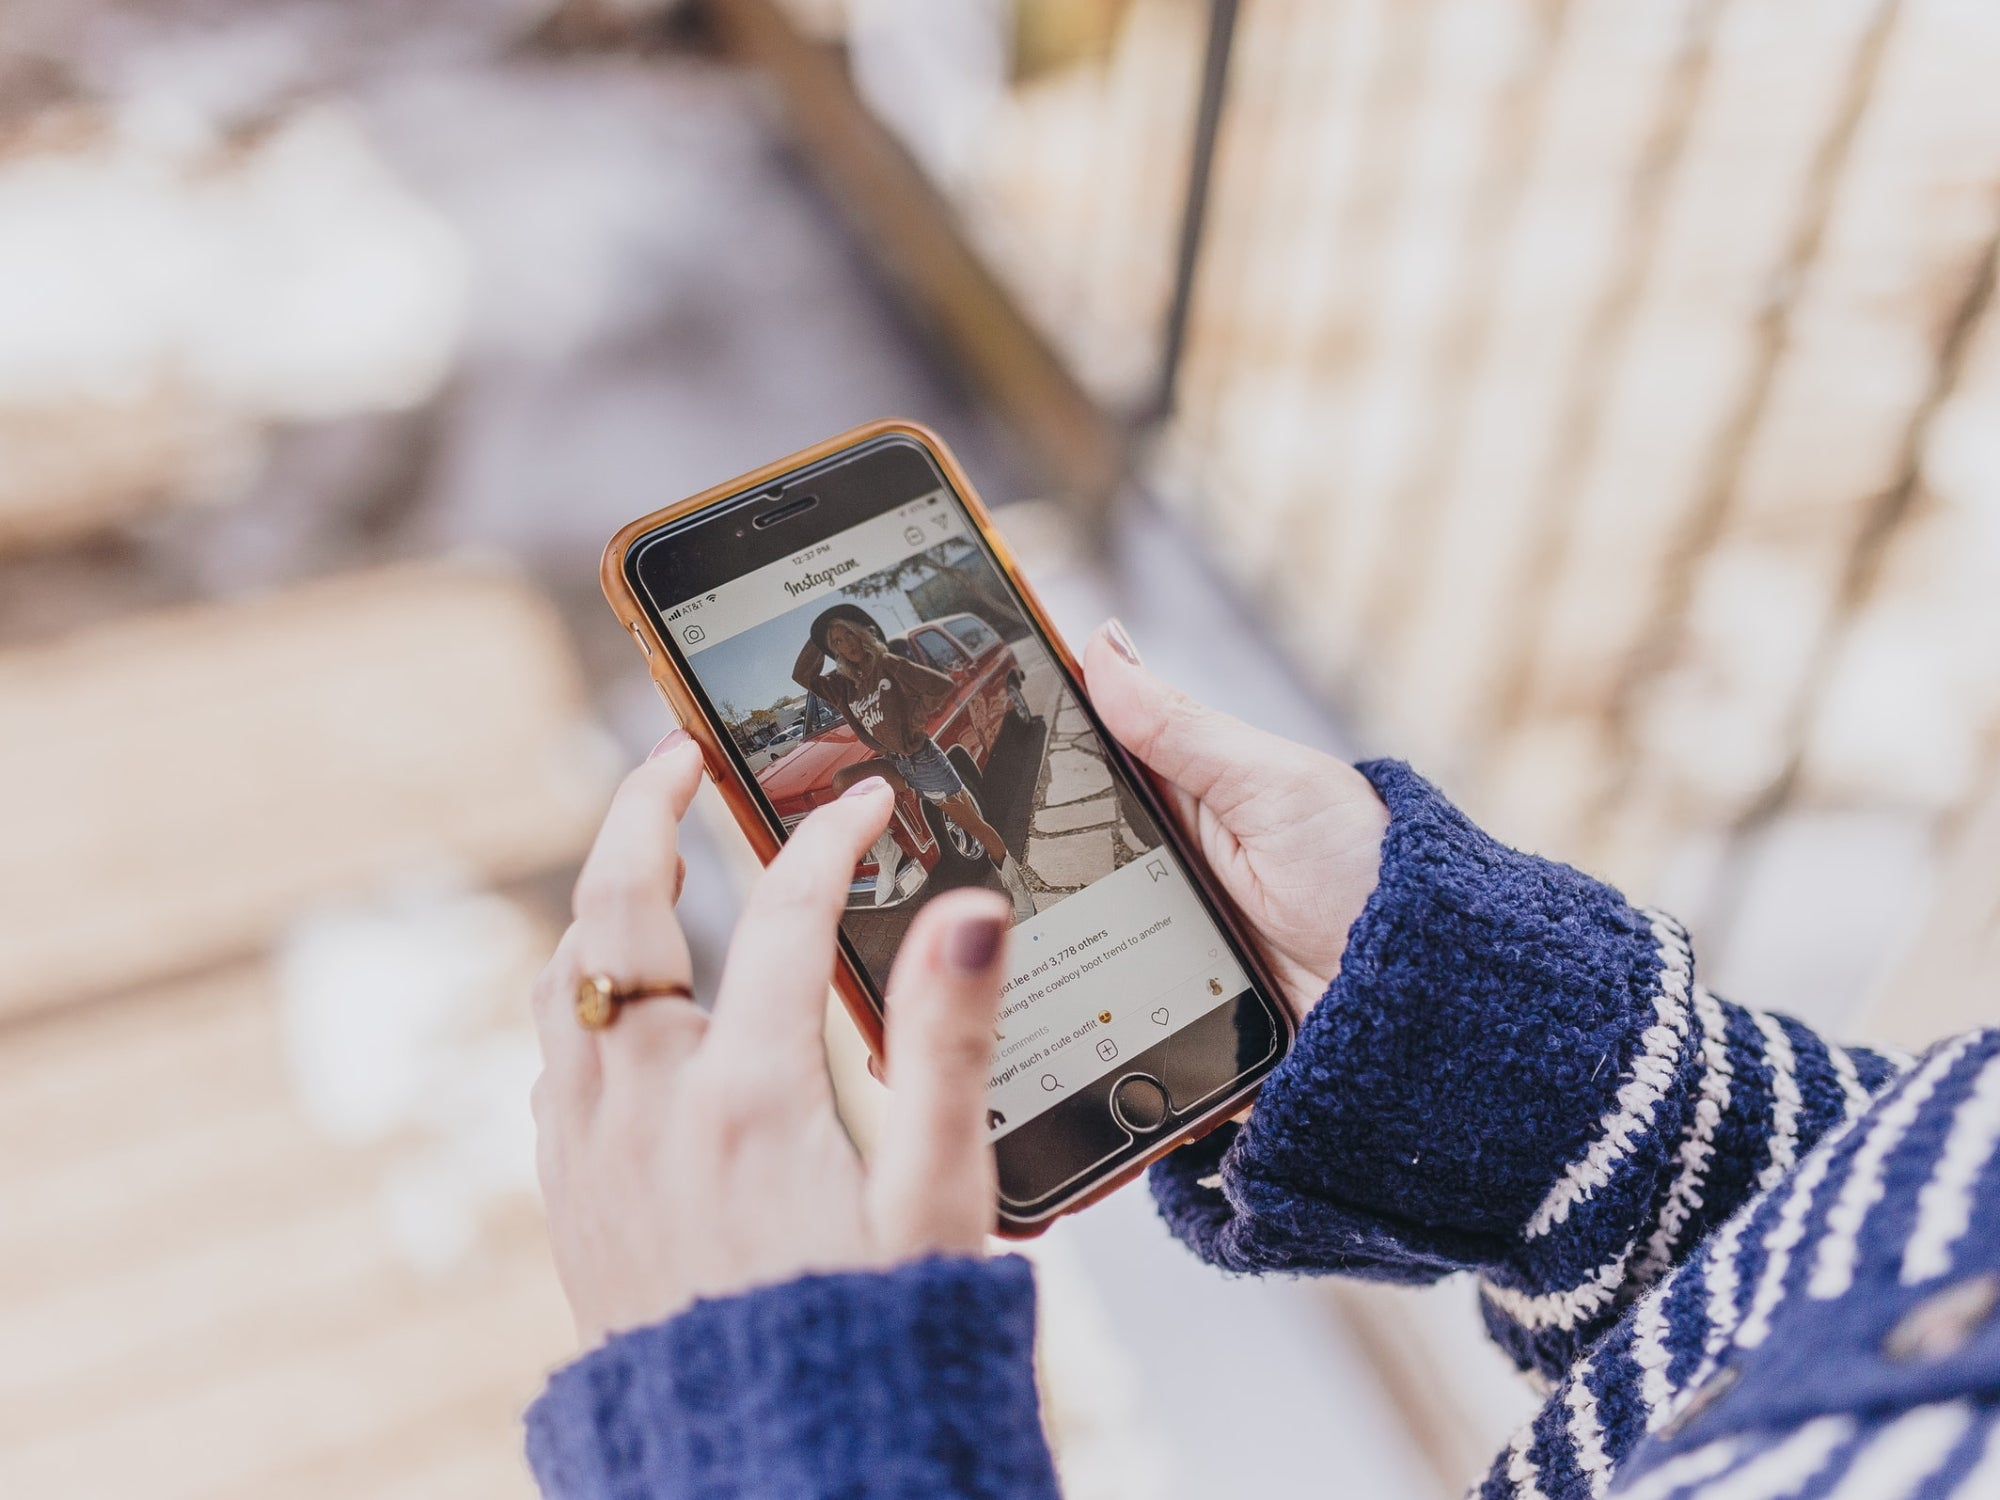 A person holding their phone and looking at a photo on Instagram.